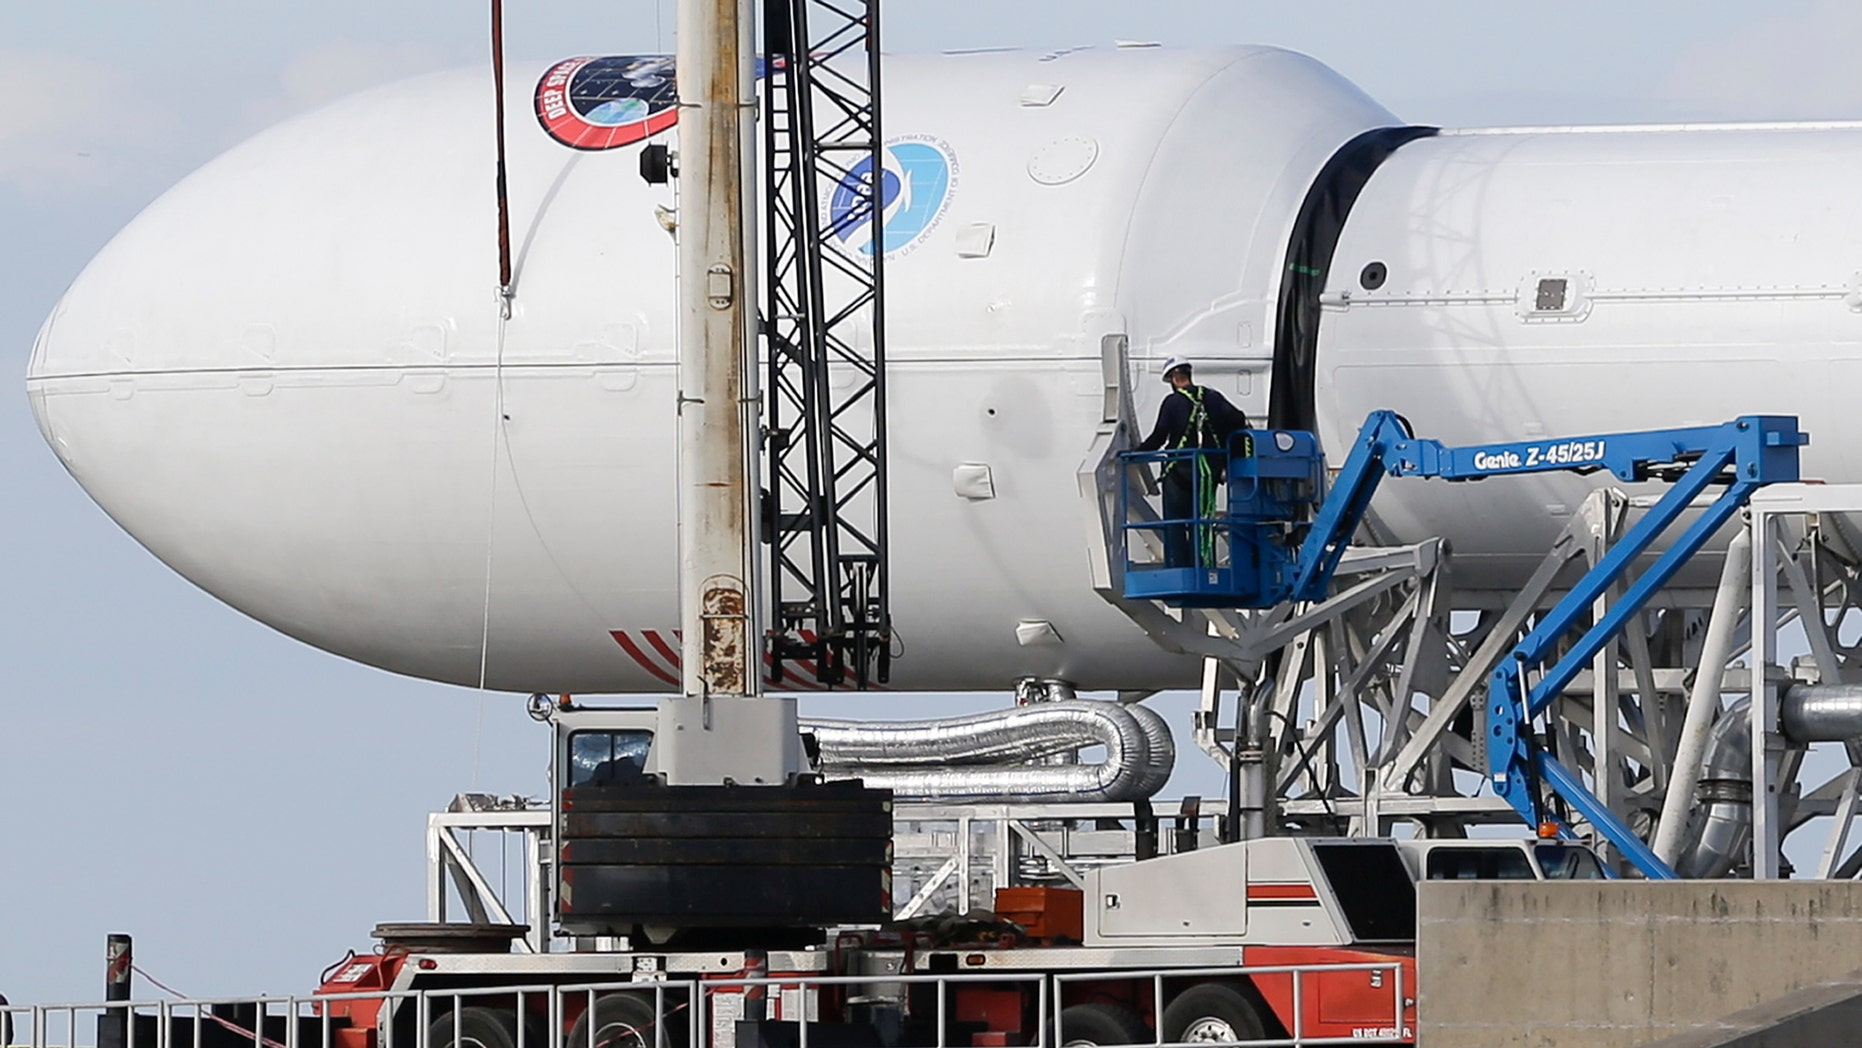 File photo - Maintenance is performed by workers on the Falcon 9 SpaceX rocket at launch complex 40 at the Cape Canaveral Air Force Station in Cape Canaveral, Fla., Monday, Feb. 9, 2015.